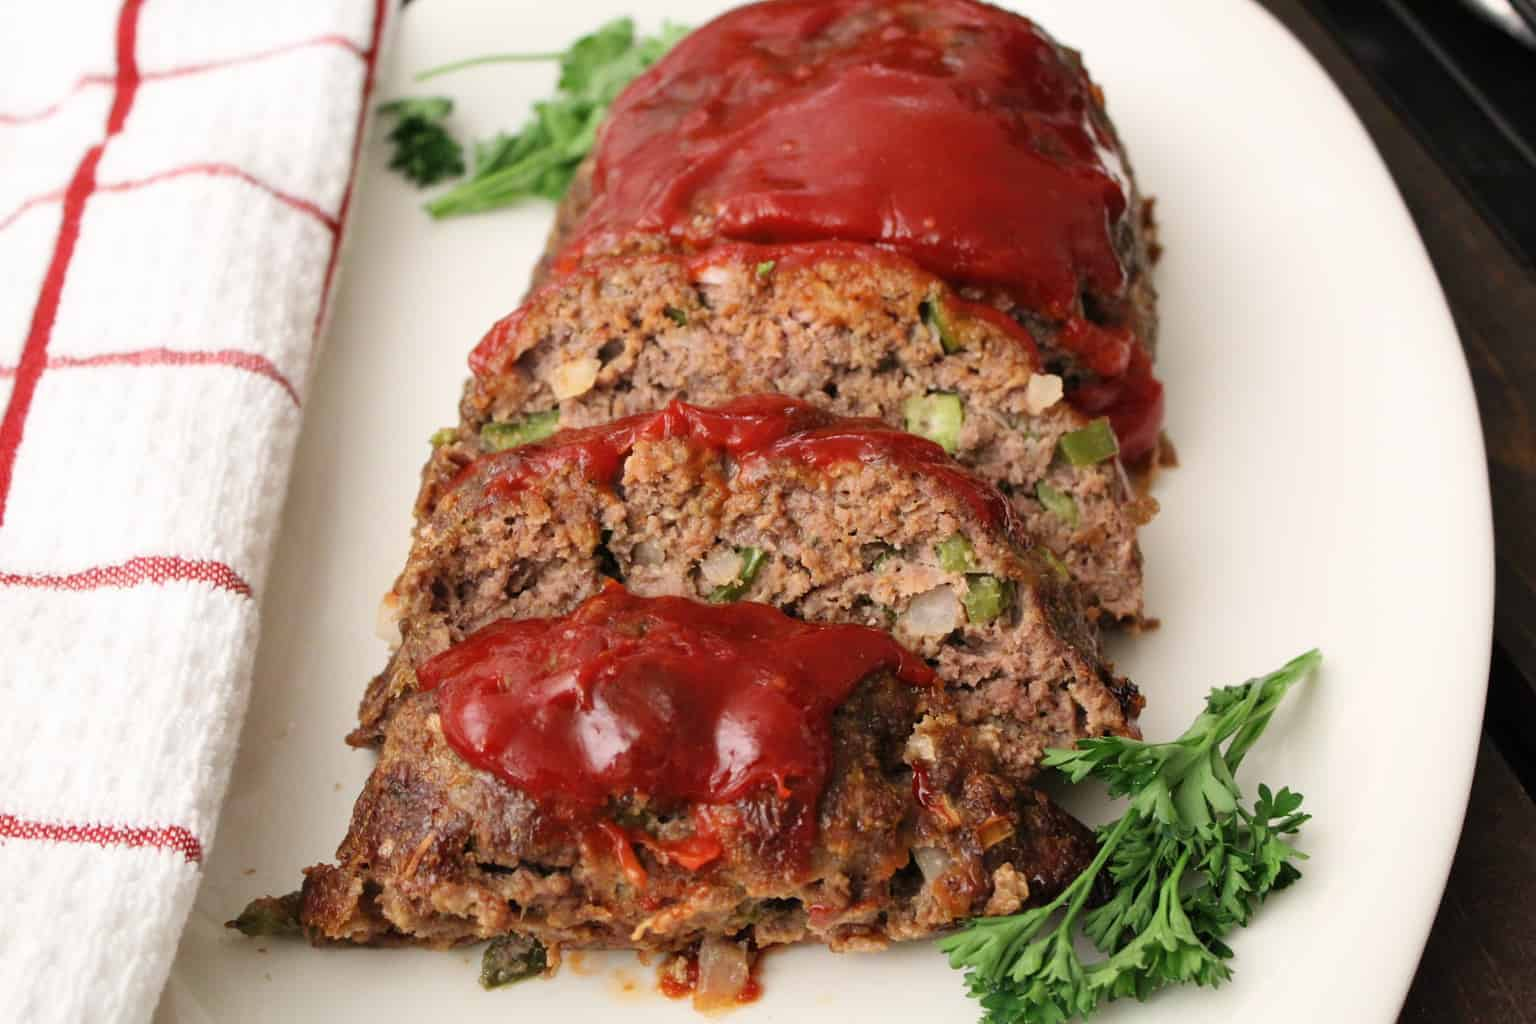 Classic Meatloaf sliced on white platter topped with tomato sauce